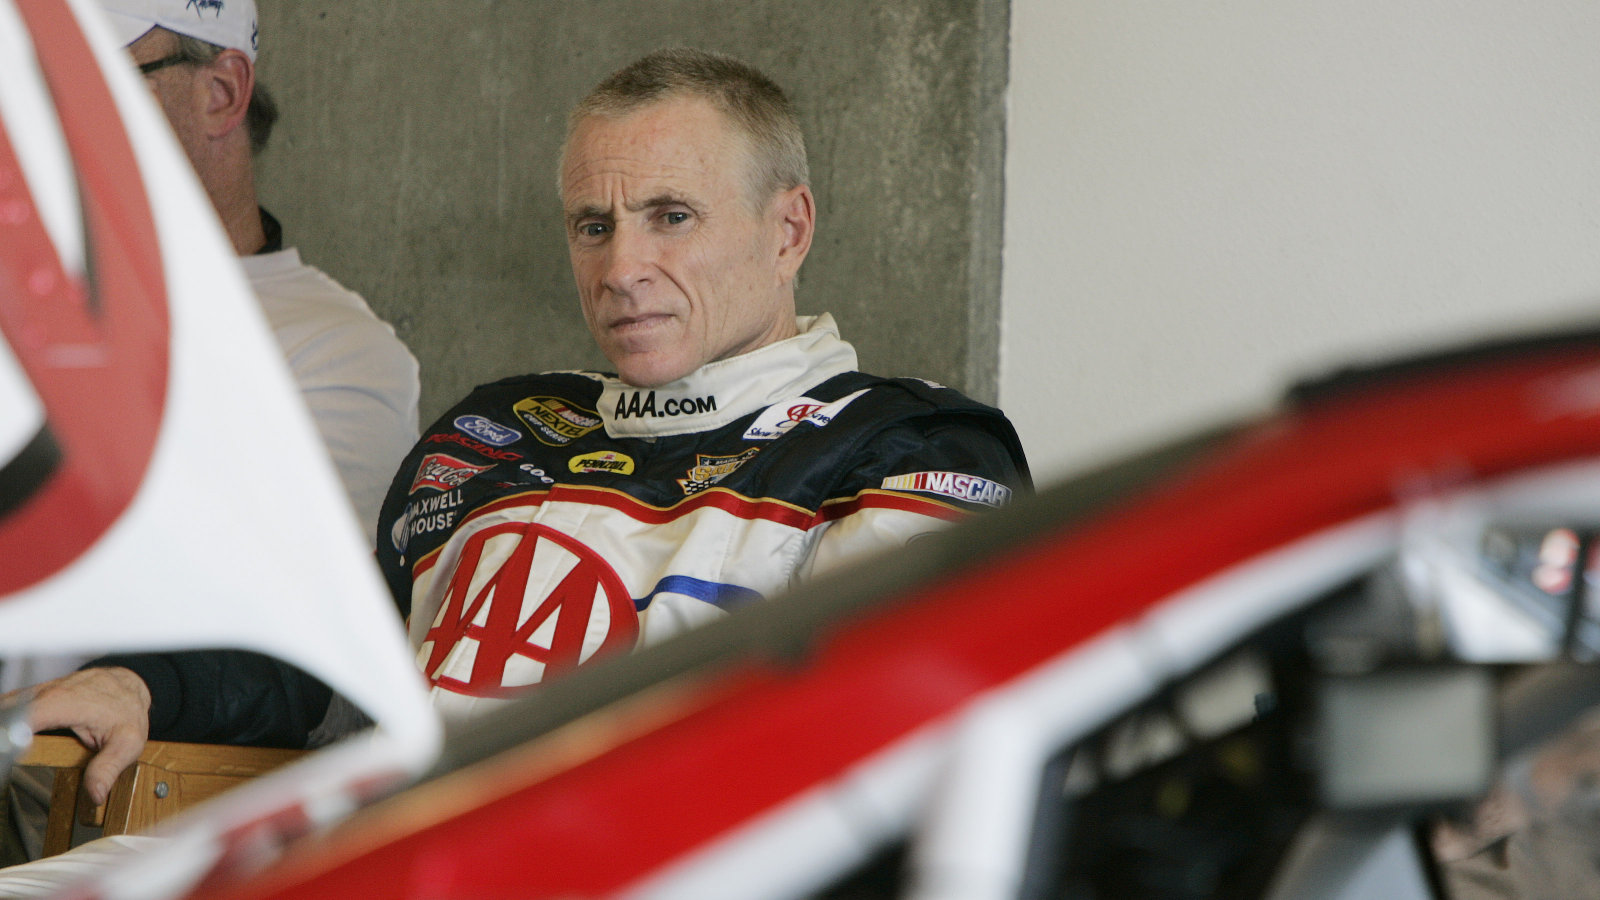 Click here to read NASCAR's Mark Martin to Race Under the Name of the Guy That Stole His Twitter Account